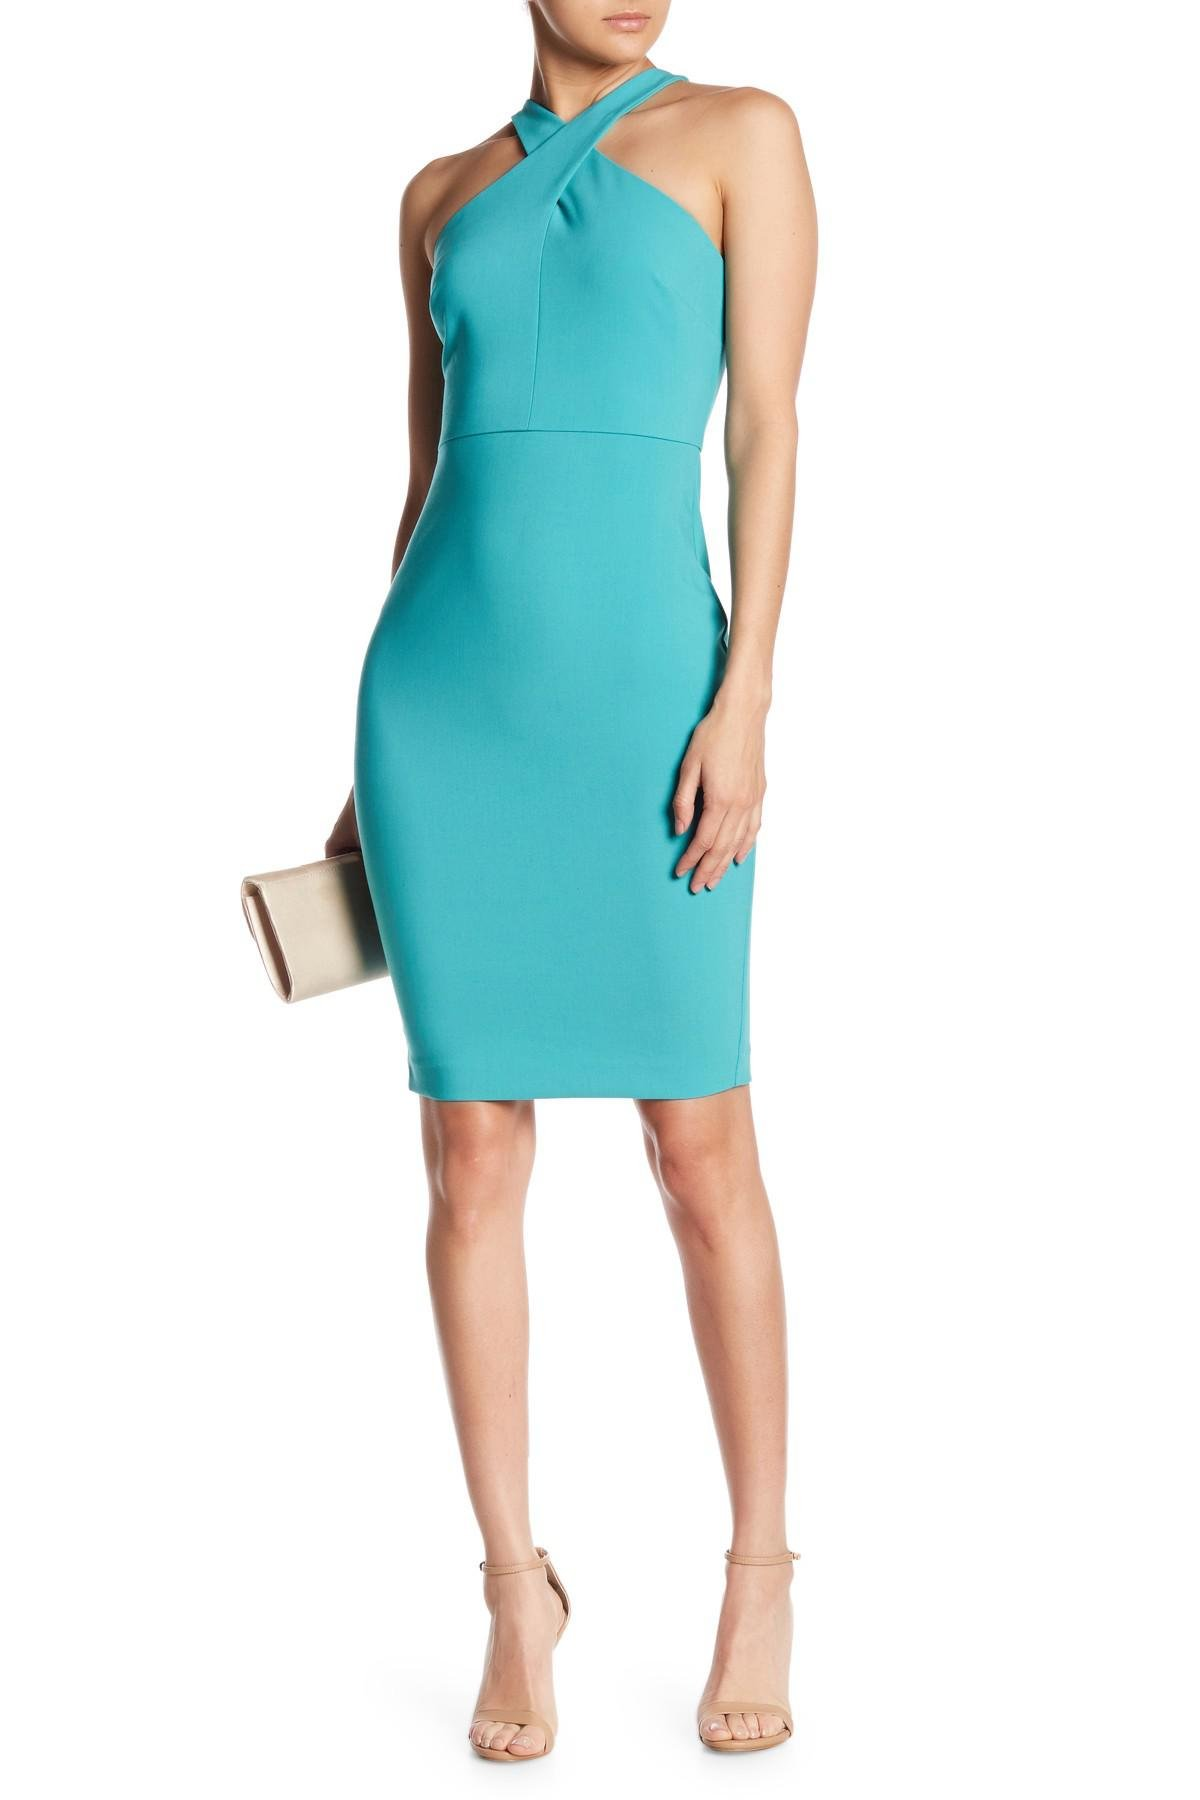 995c04e3 Lyst - Likely Carolyn Dress in Blue